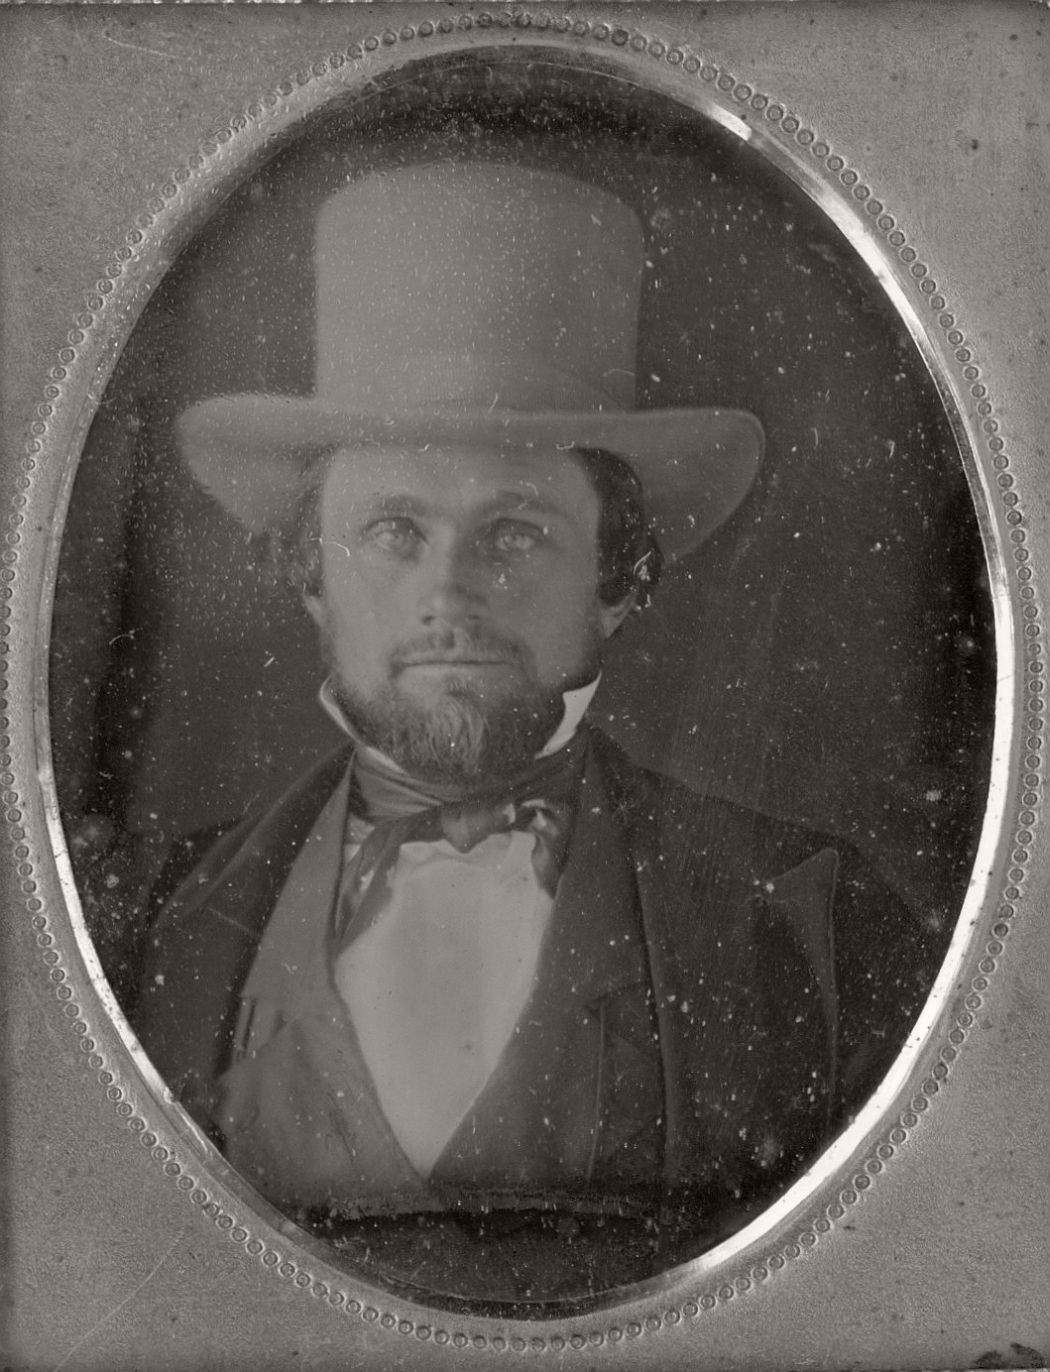 victorian-era-daguerreotype-of-men-in-hat-1850s-xix-century-11